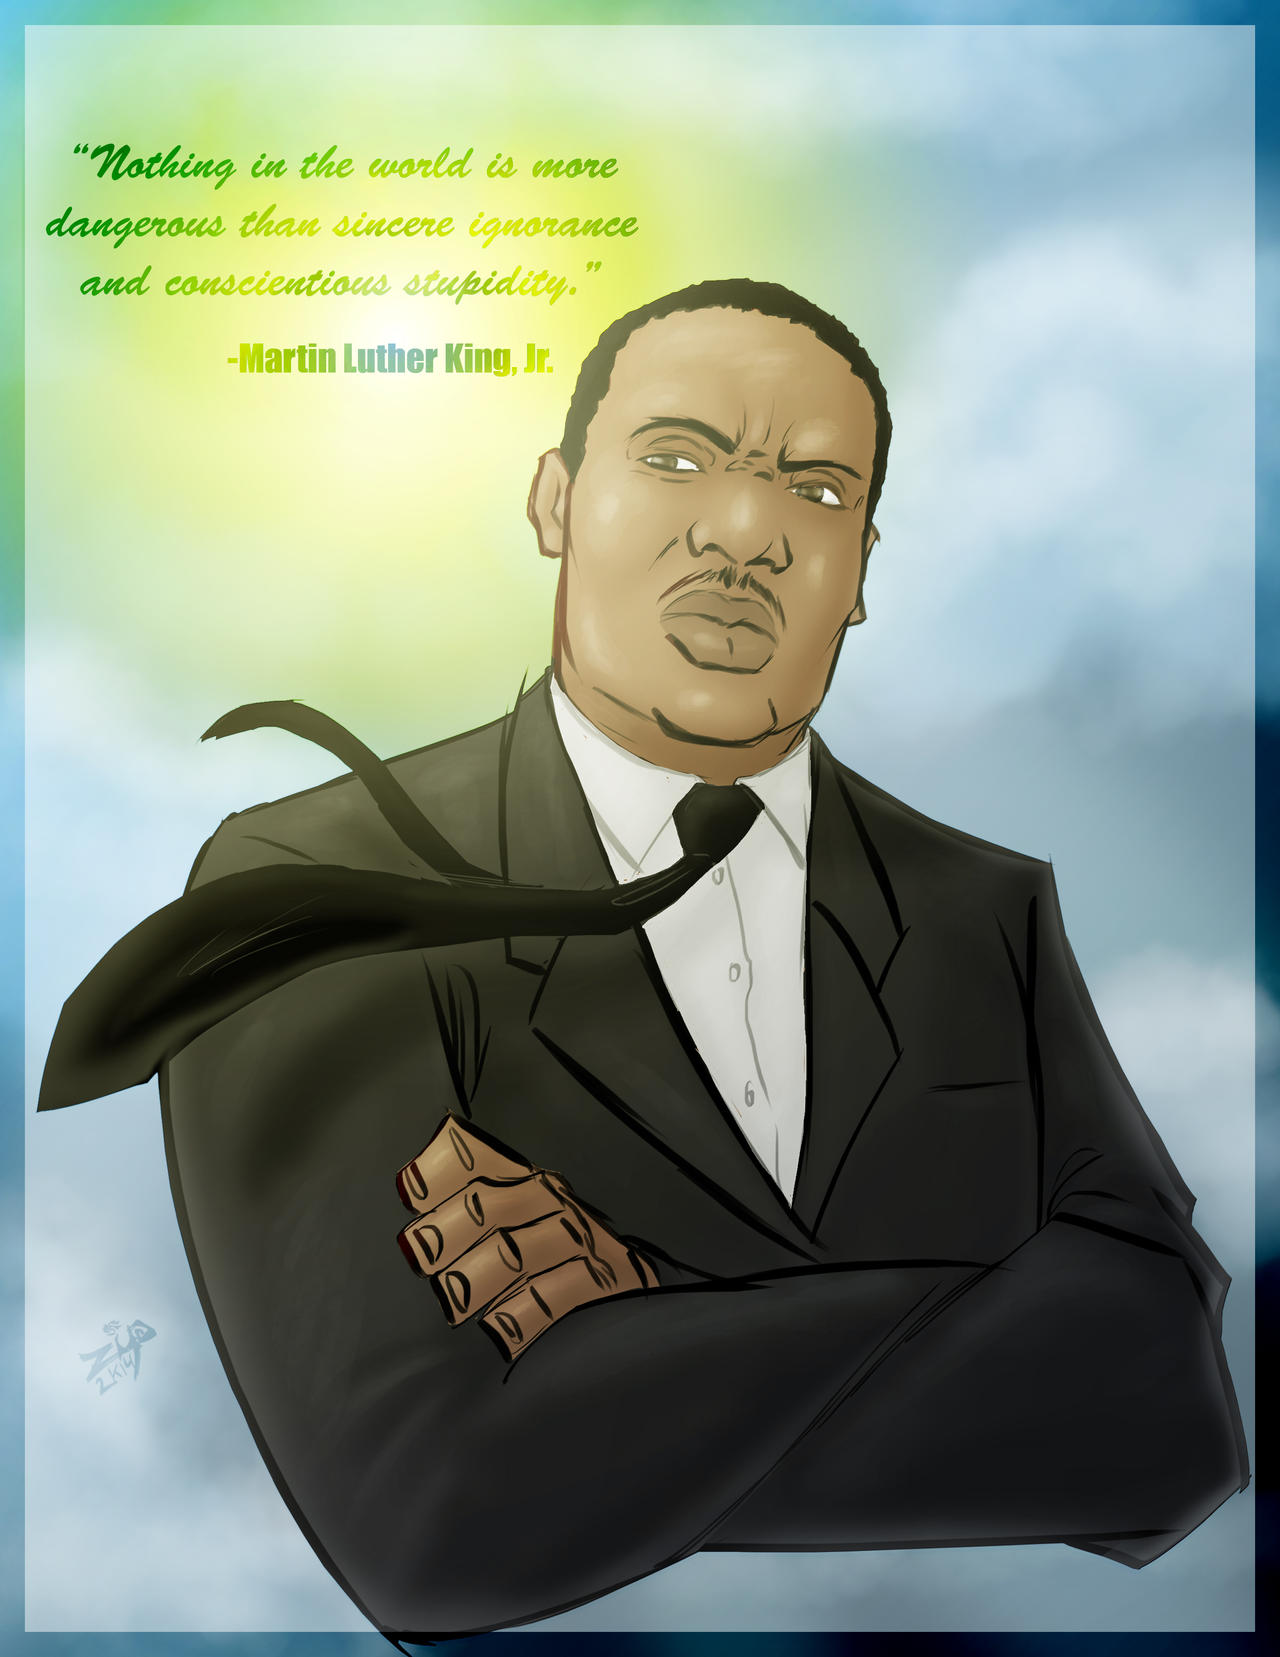 dr. Martin Luther King Jr by ZipDraw